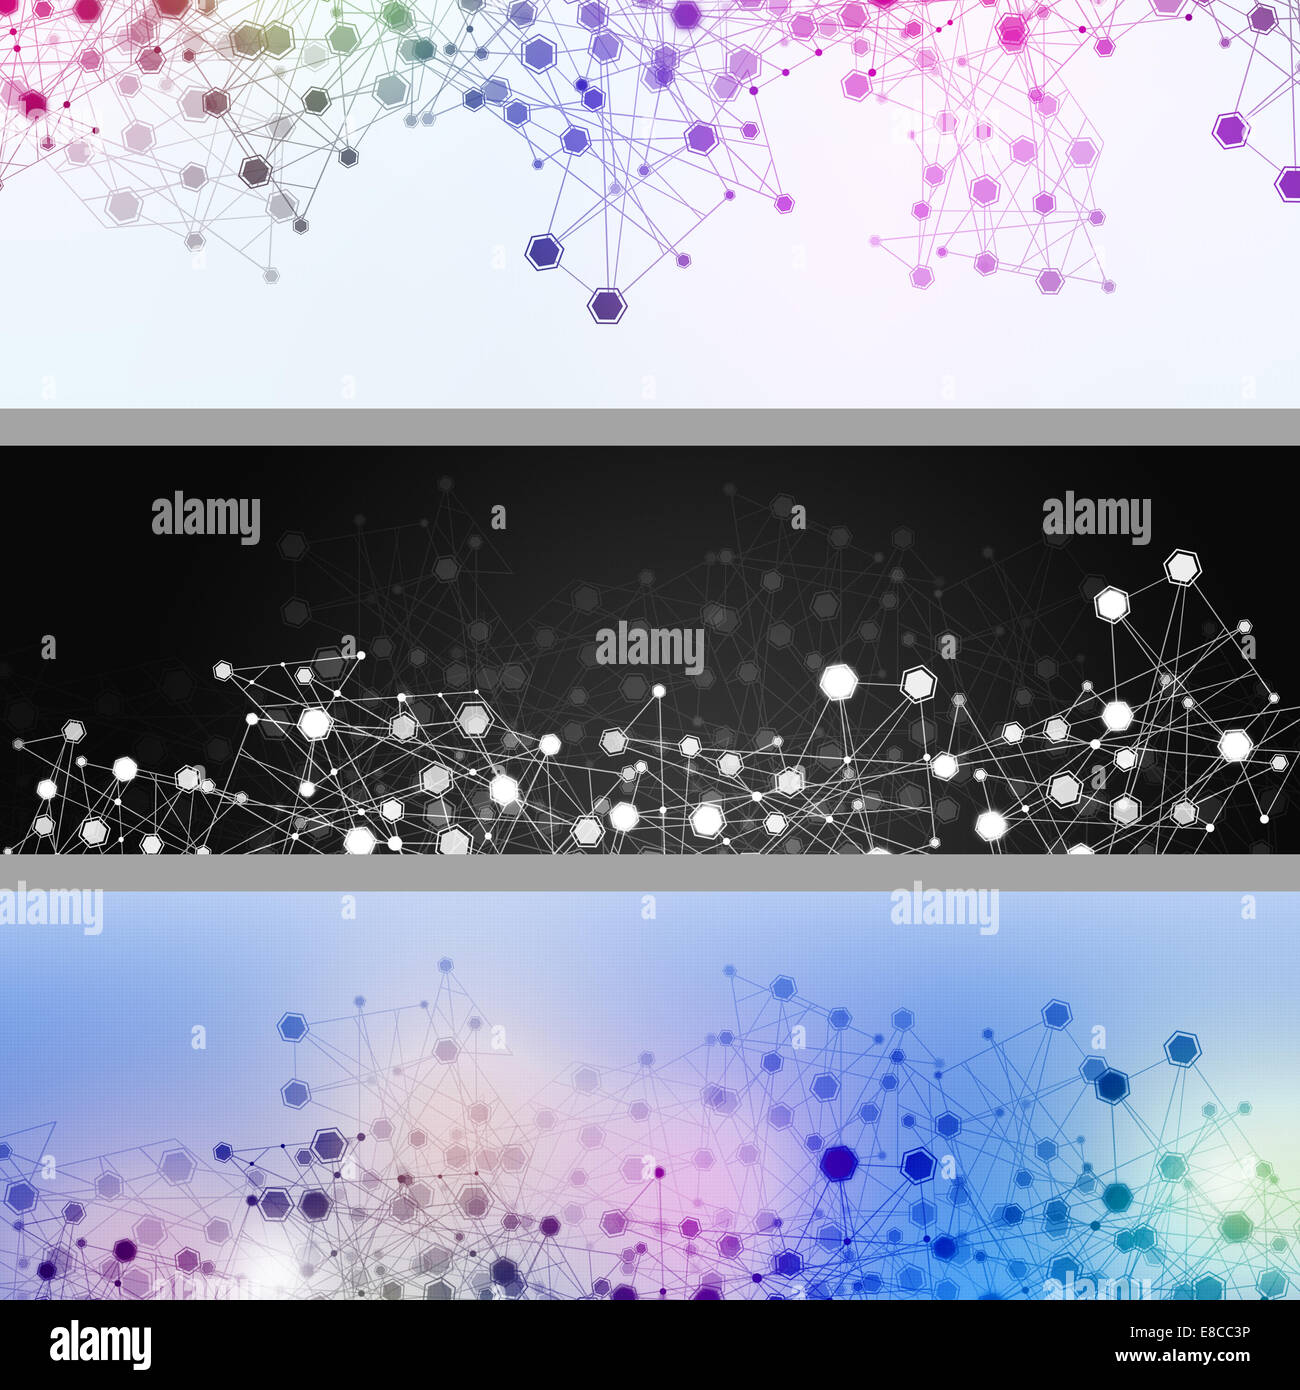 abstract technology geometric concept connections network banners - Stock Image